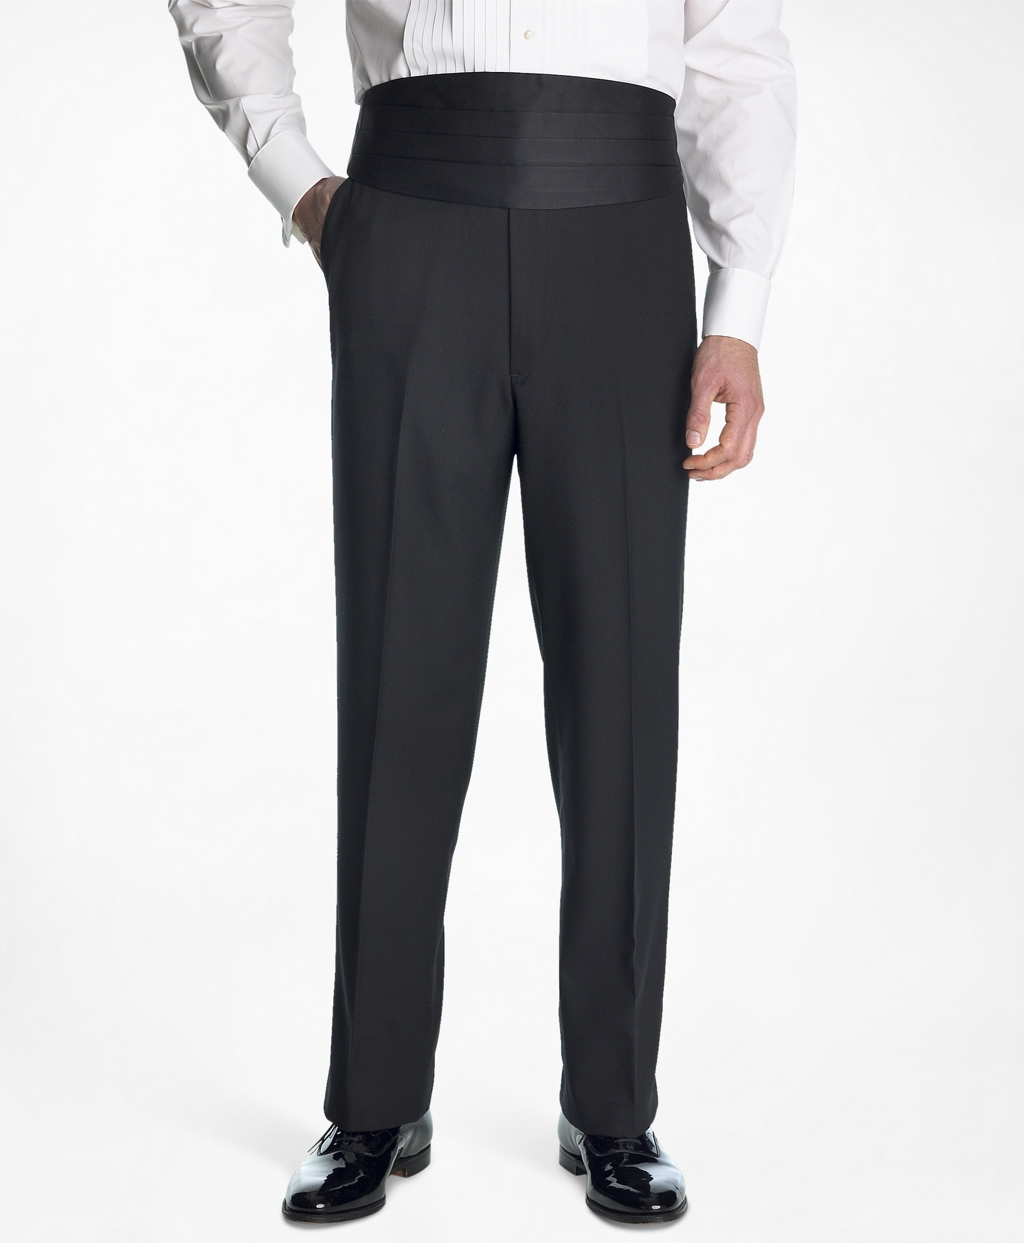 New Vintage Tuxedos, Tailcoats, Morning Suits, Dinner Jackets Brooks Brothers Mens 1818 Plain-Front Tuxedo Trousers $300.00 AT vintagedancer.com